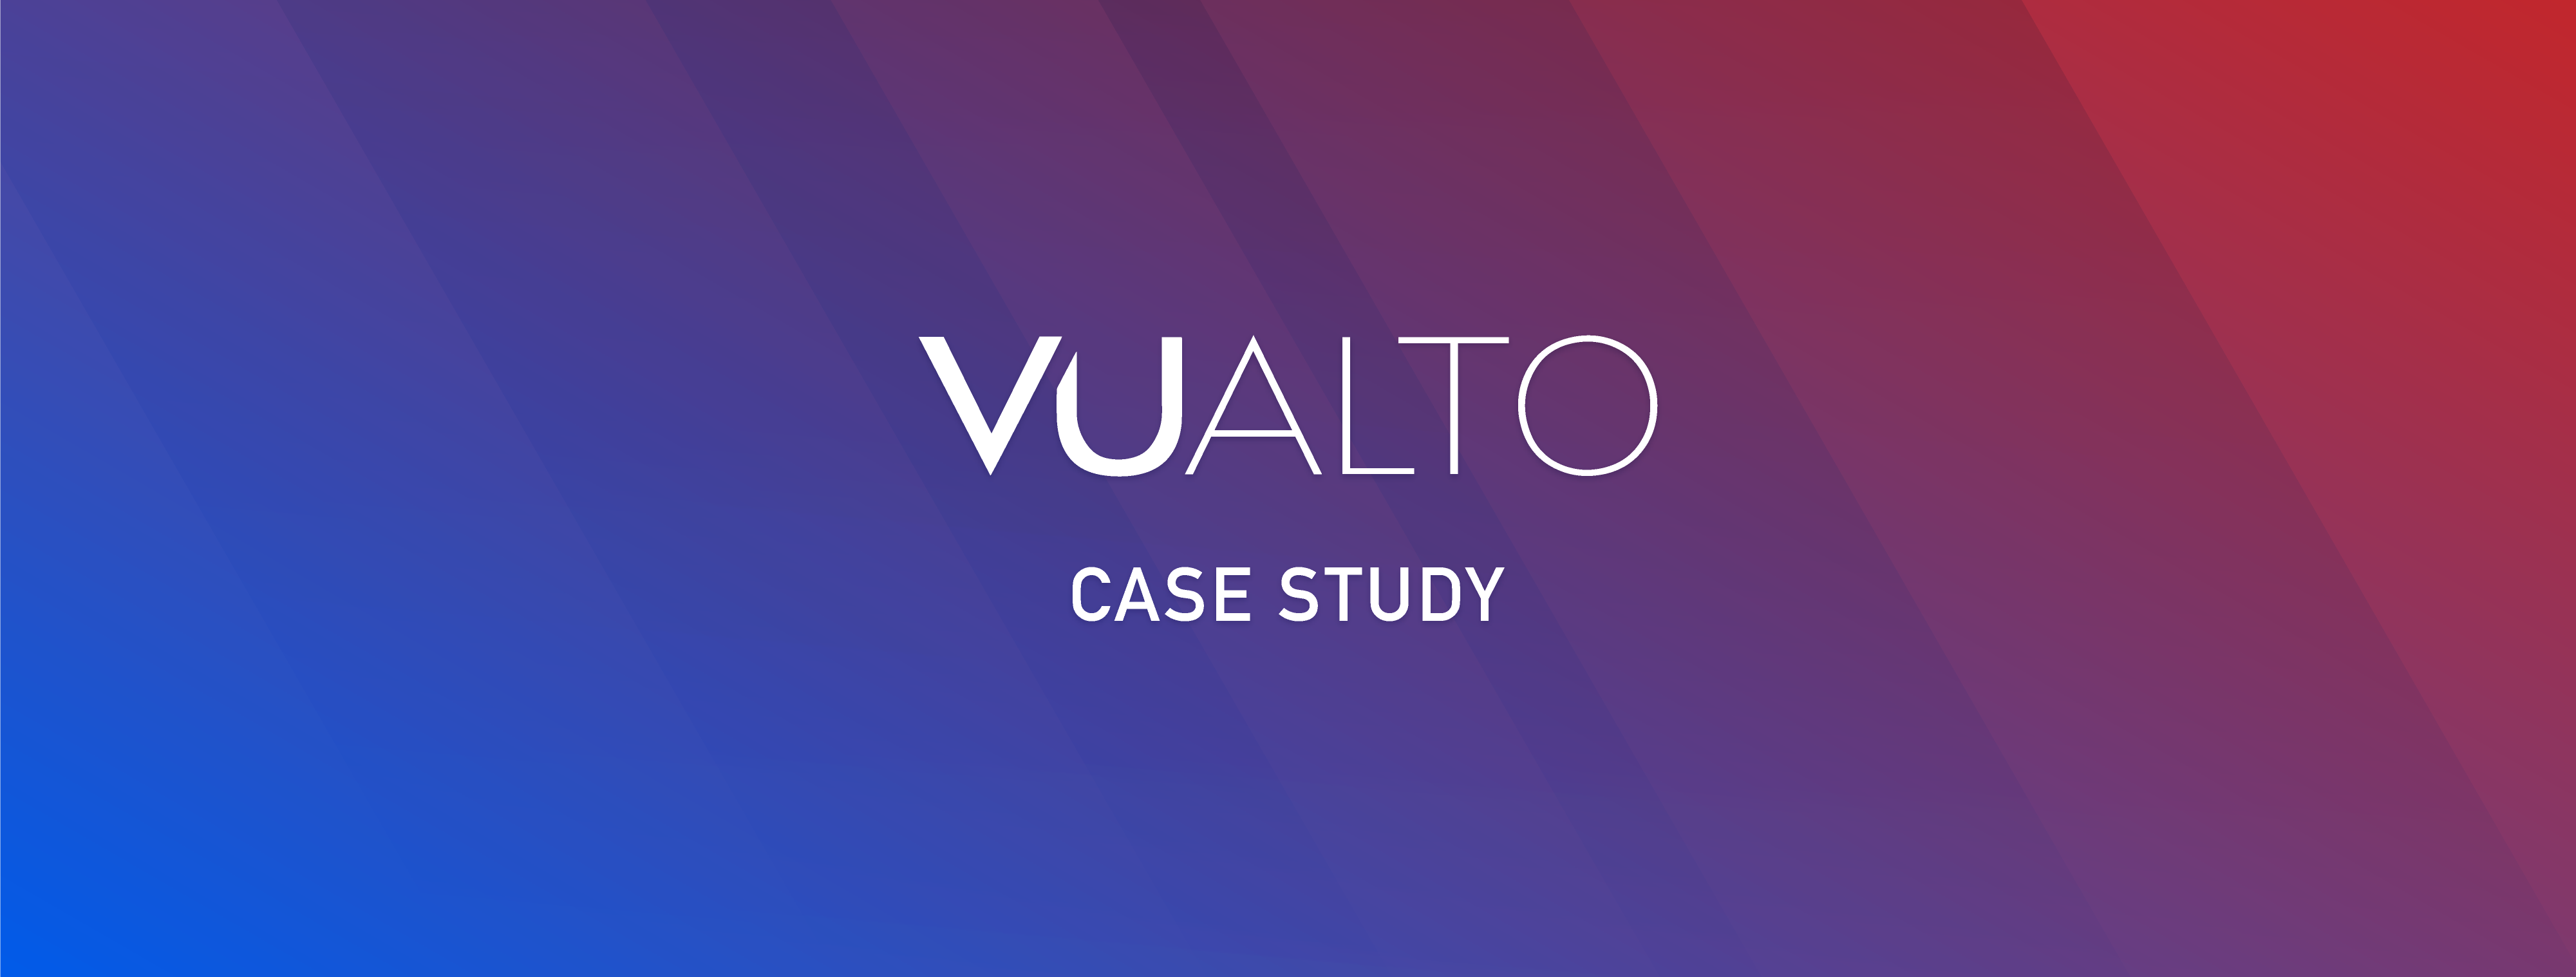 Rancher Integration Allows VUALTO to Increase Efficiency by 70-75%